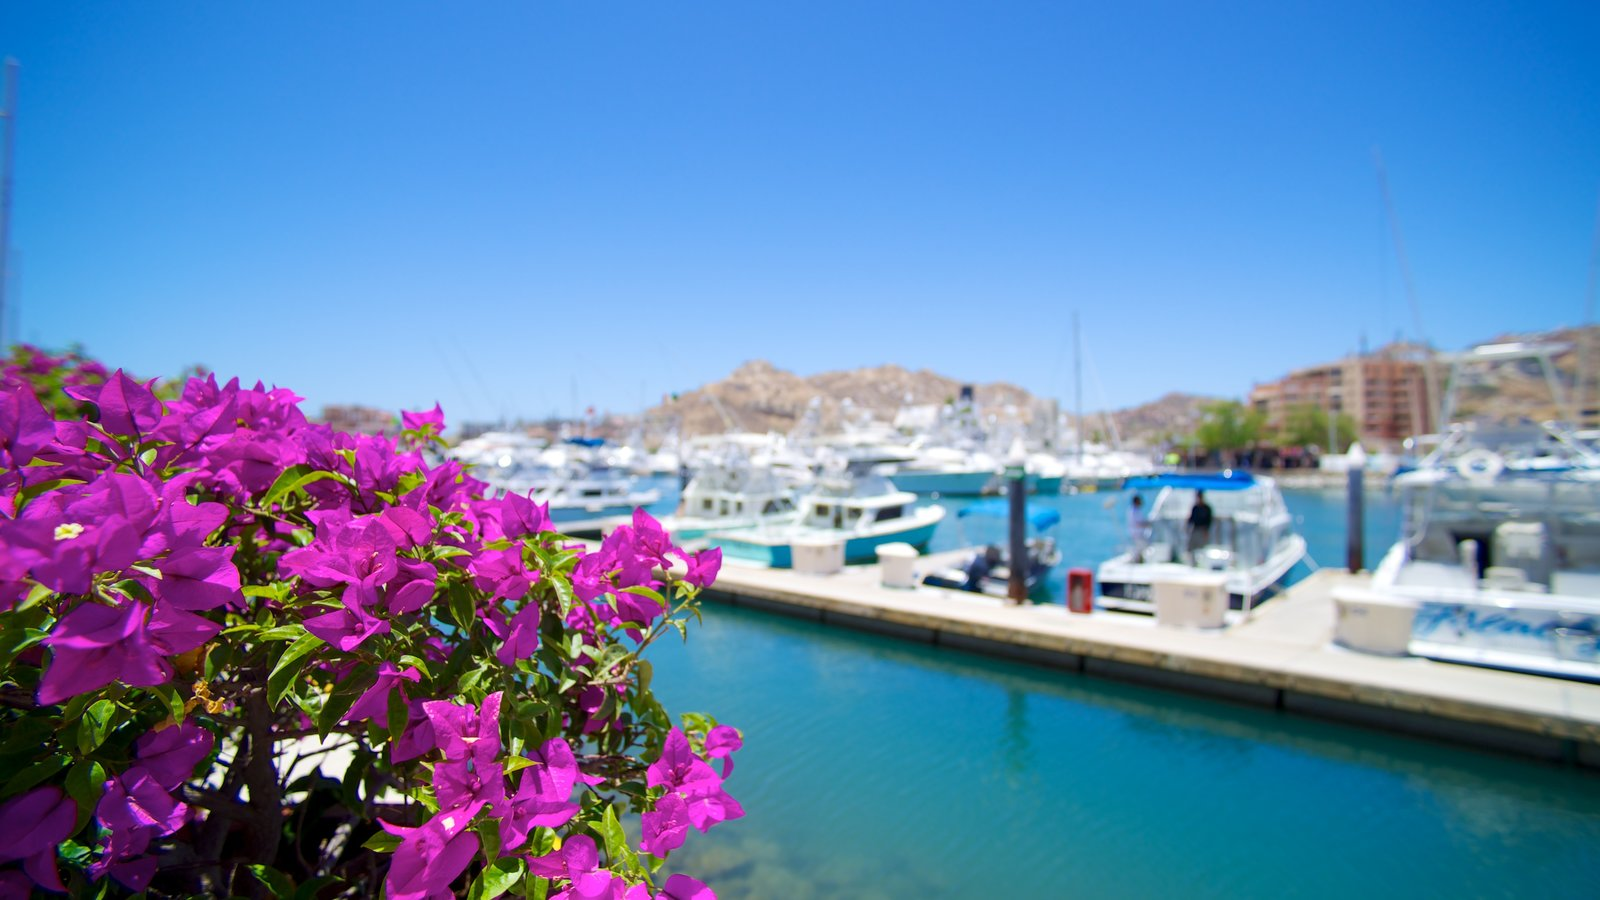 Marina Cabo San Lucas showing a marina and flowers